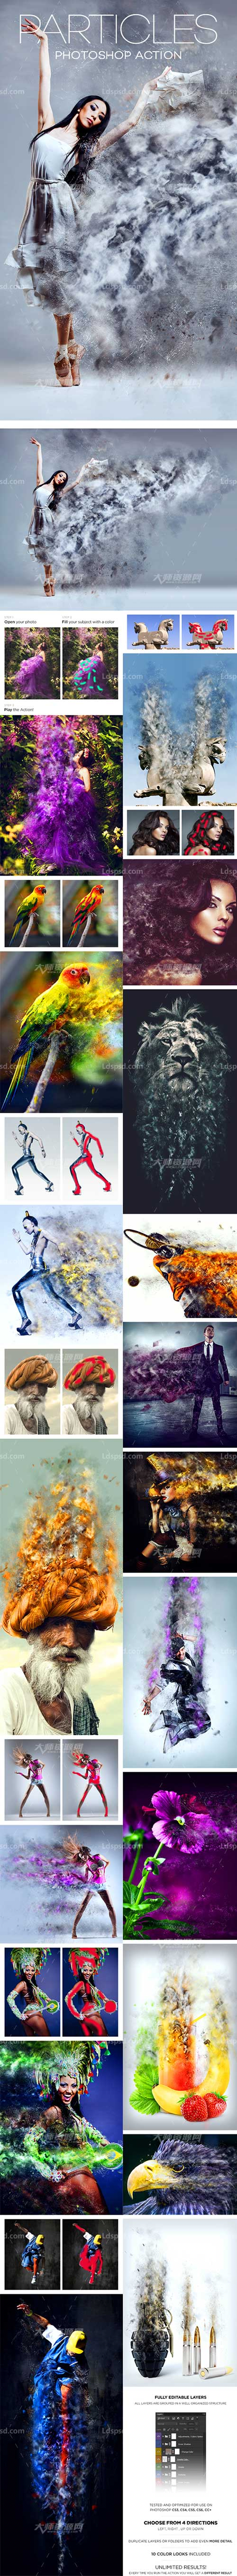 Particles Photoshop Action,极品PS动作-烽尘抽离(含高清视频教程)